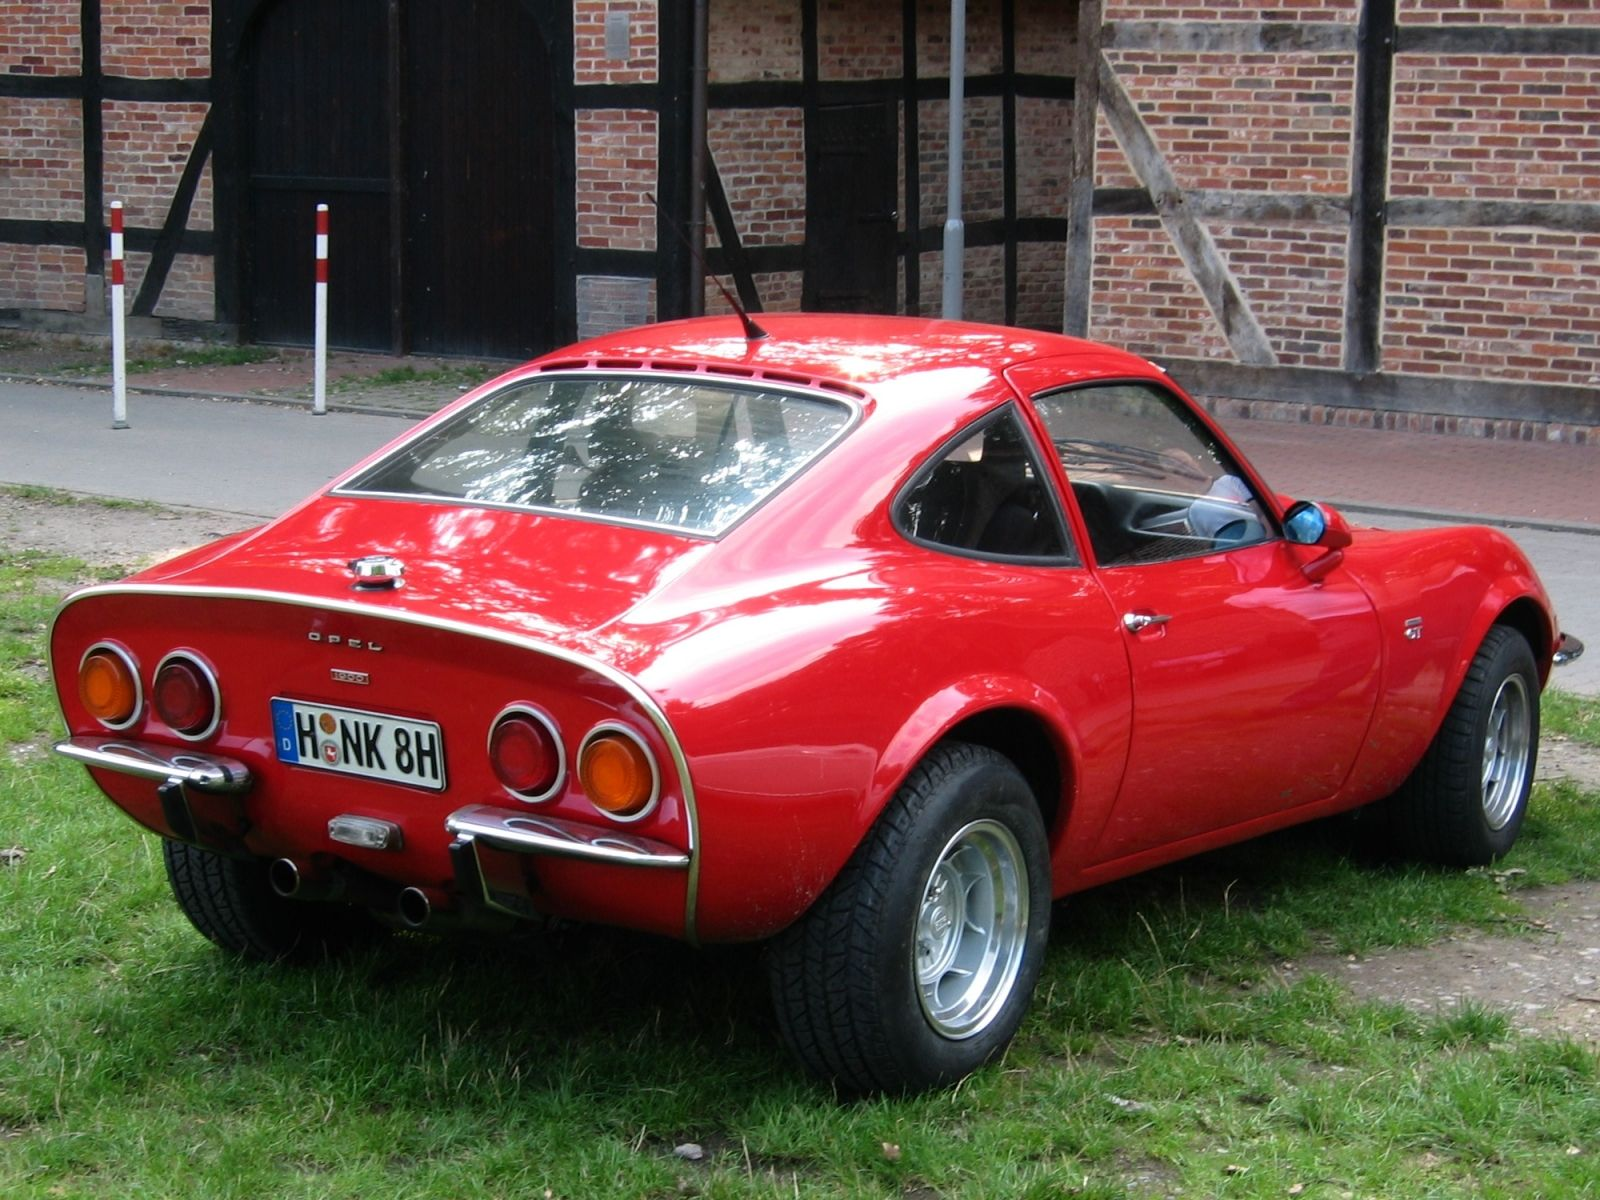 Garage Opel Luxembourg Image Result For Opel Gt Opel Gt Cars Dream Cars Vintage Cars